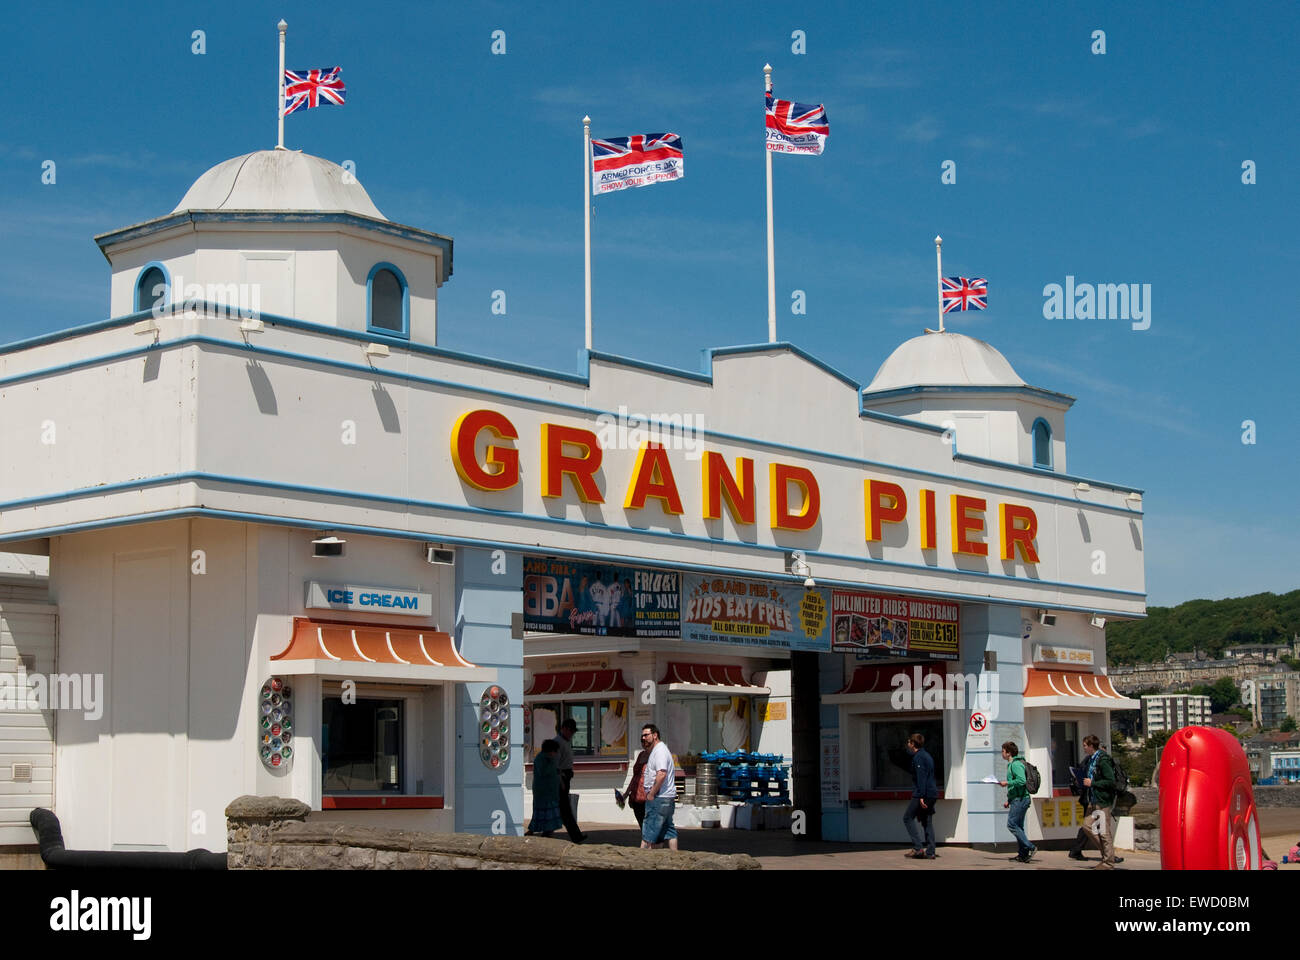 Editorial image of the Grand Pier Weston Super-Mare against blue summer skies and bathed in glorious sunshine - Stock Image